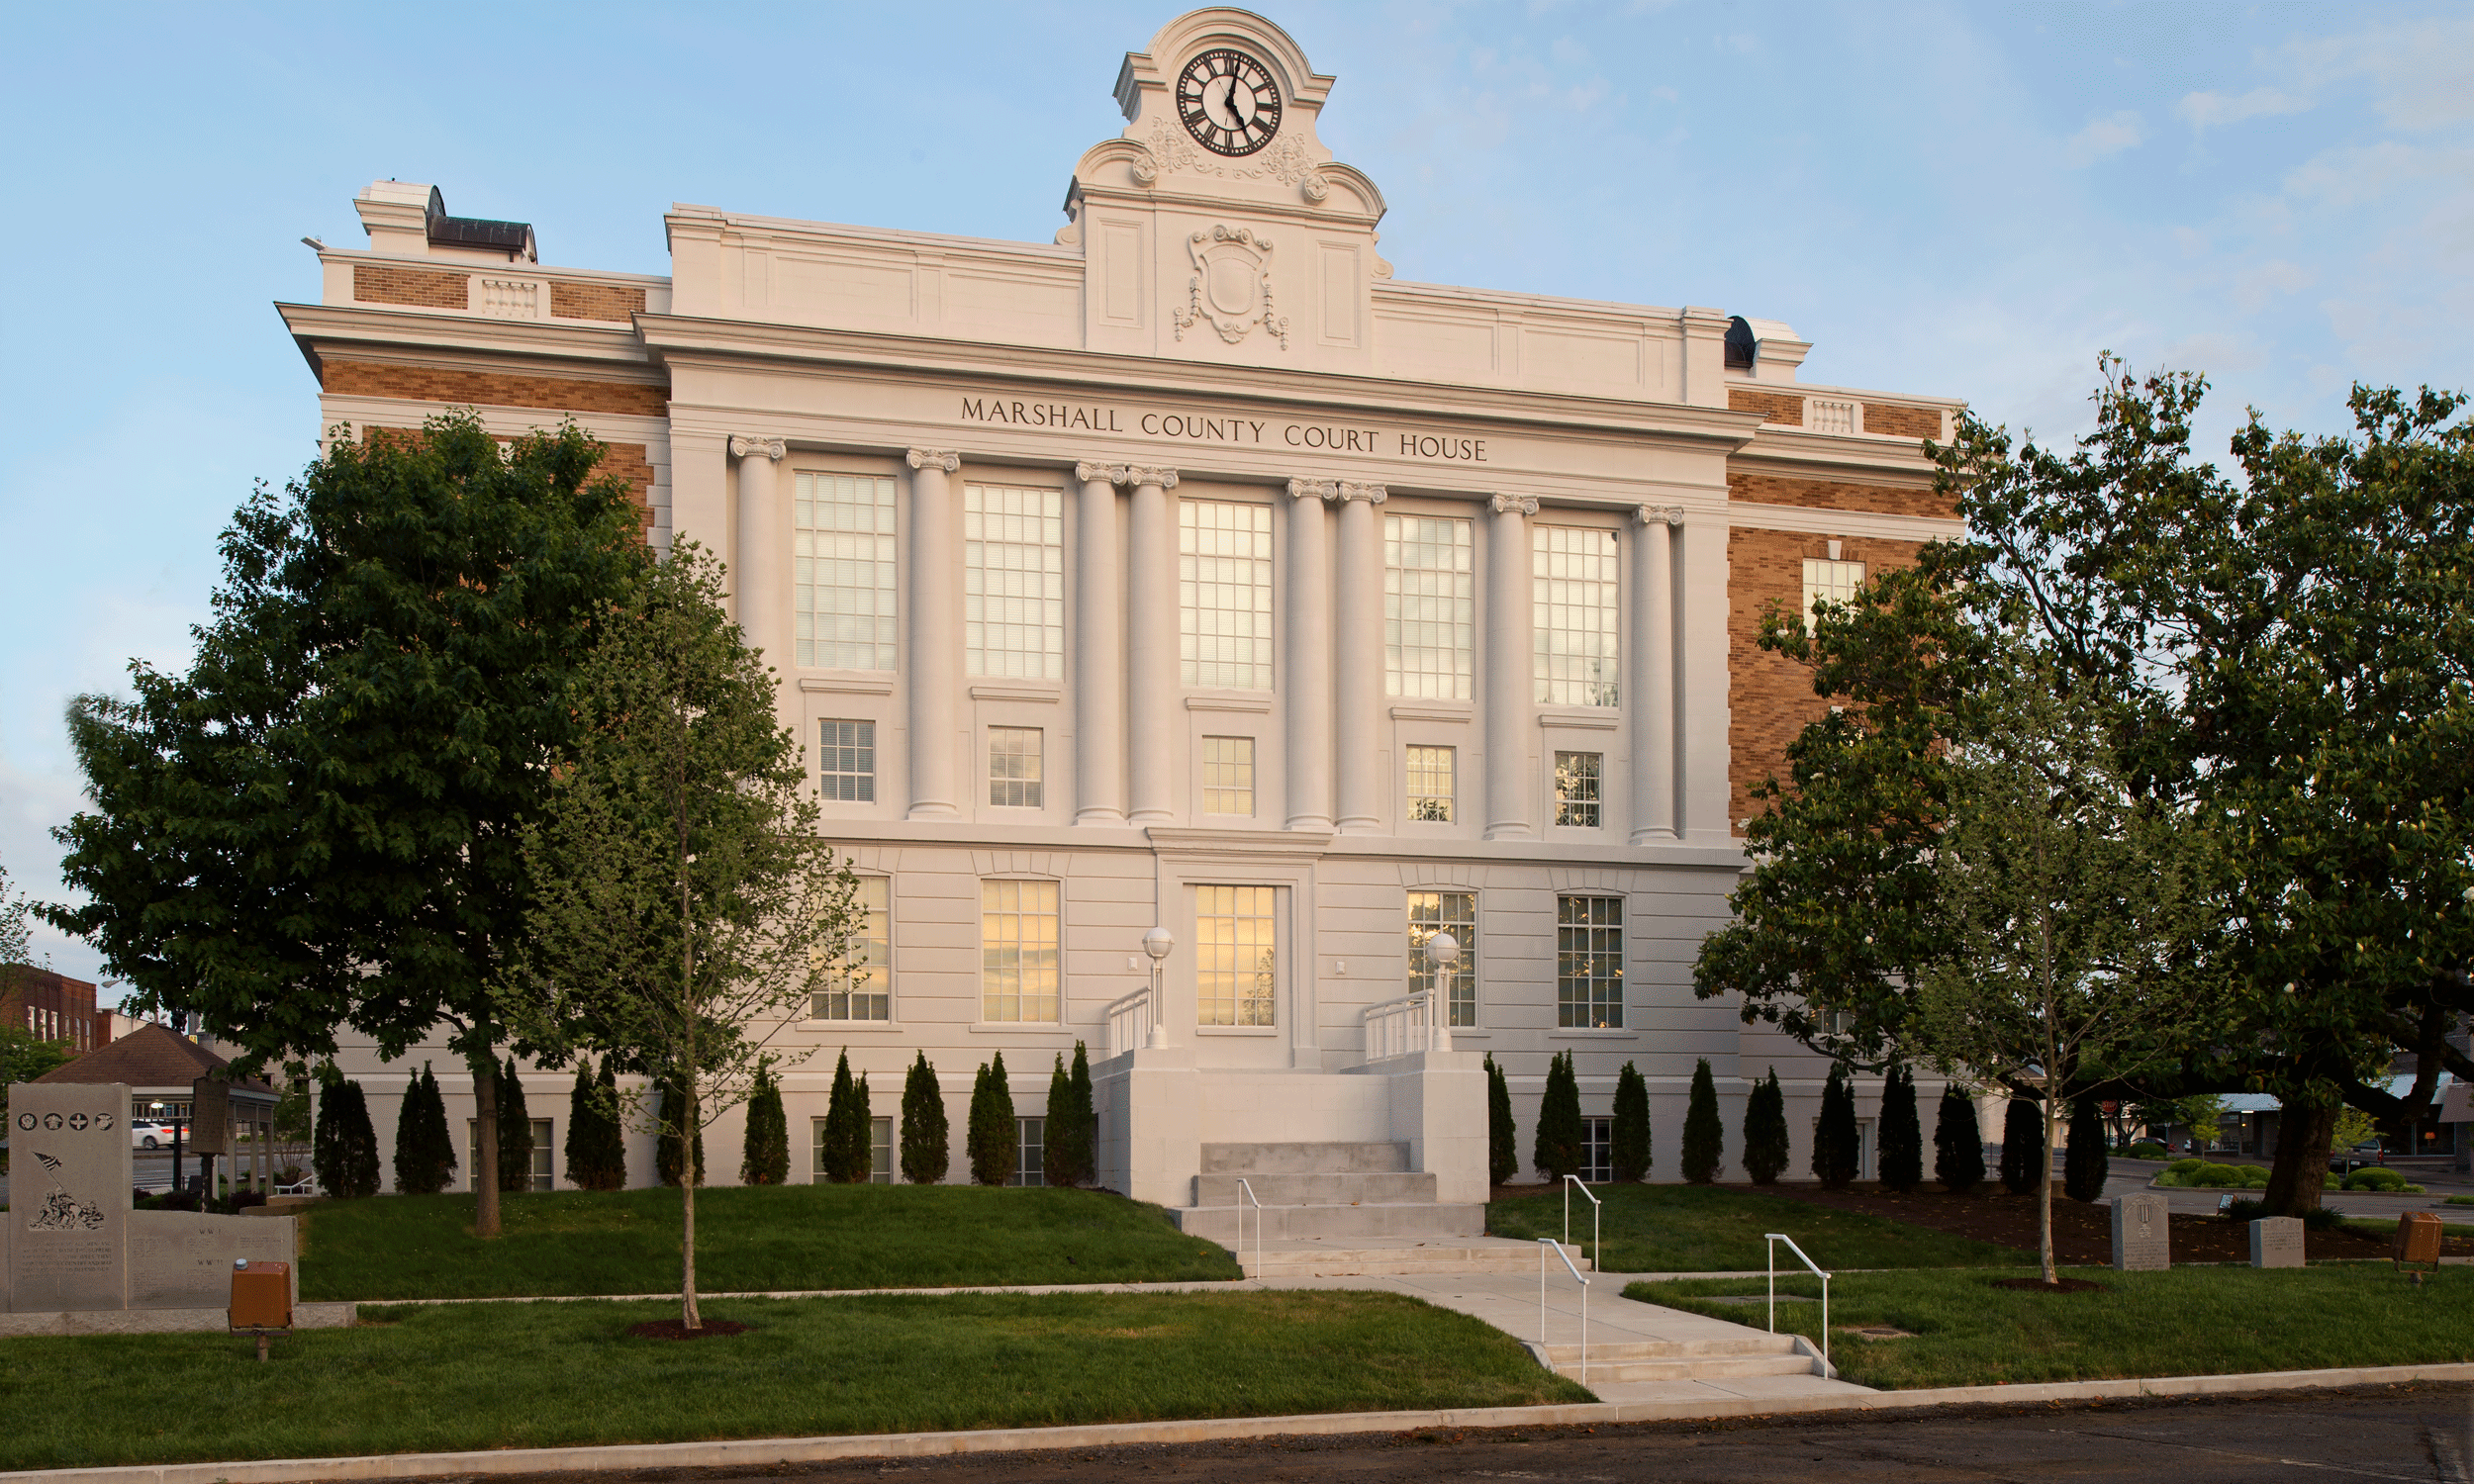 Marshall County Courthouse